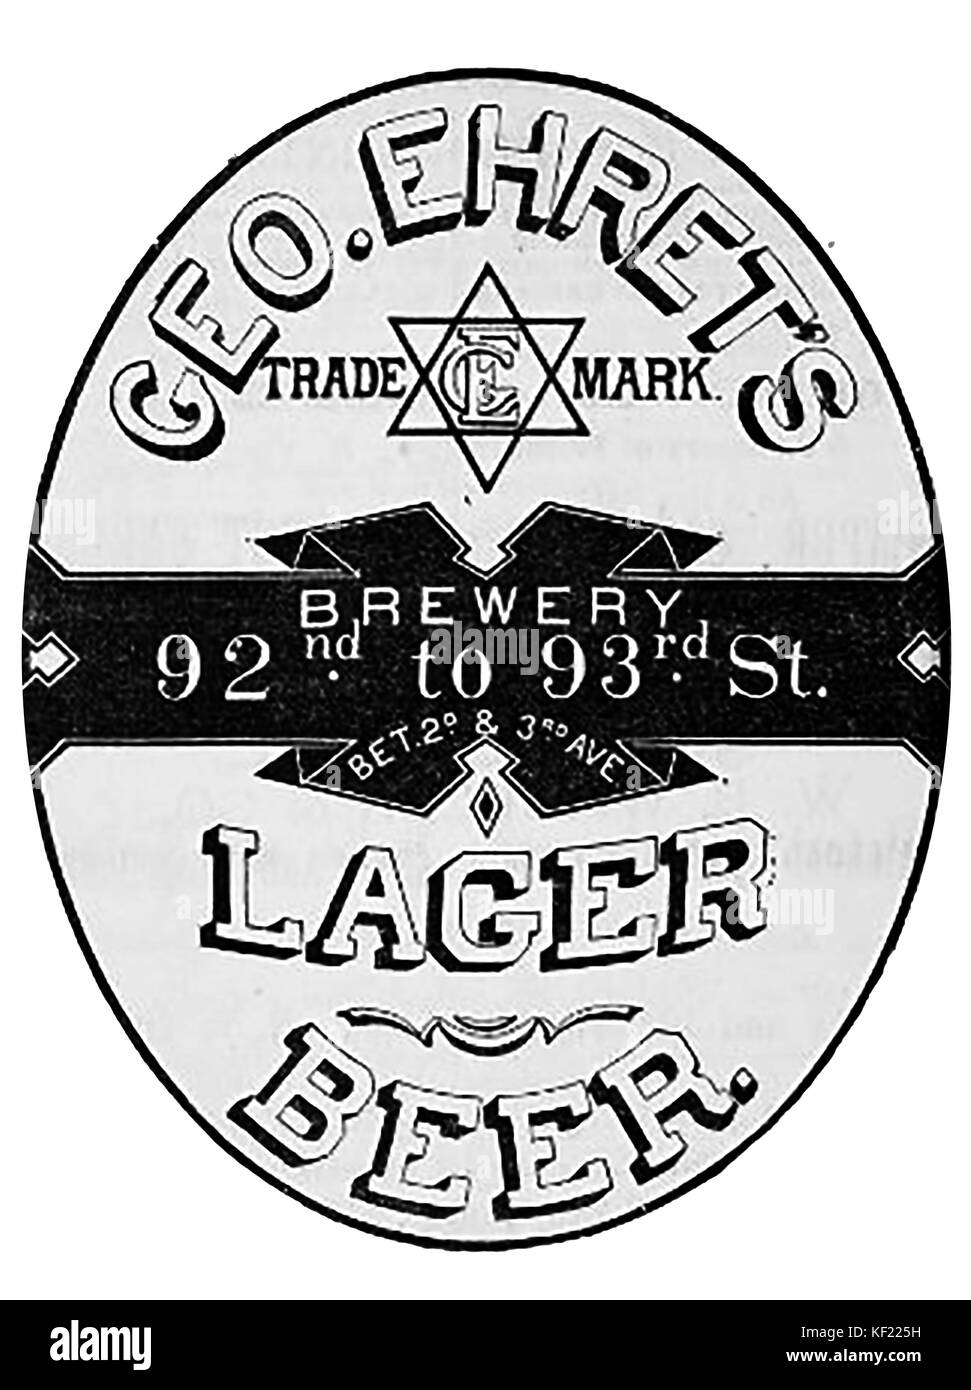 An 1890 Victorian USA advertisement for George Ehret's lager beer and brewery .-Hexagram -Star of David trademark - Stock Image